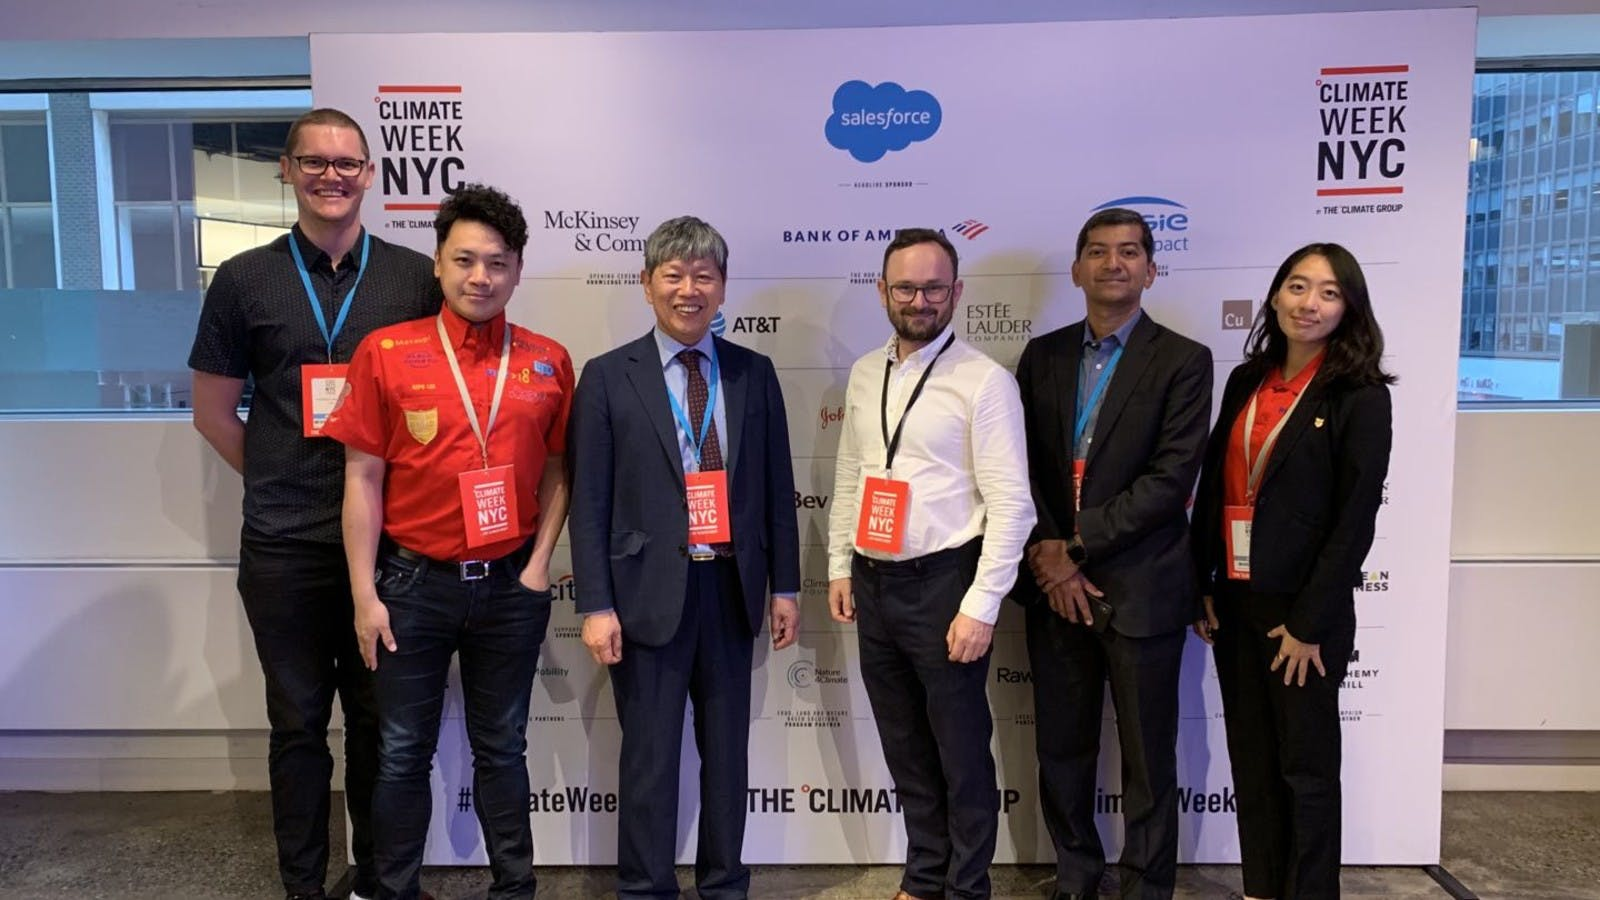 TCI's Attendance at Climate Week NYC: an Honorable Speech